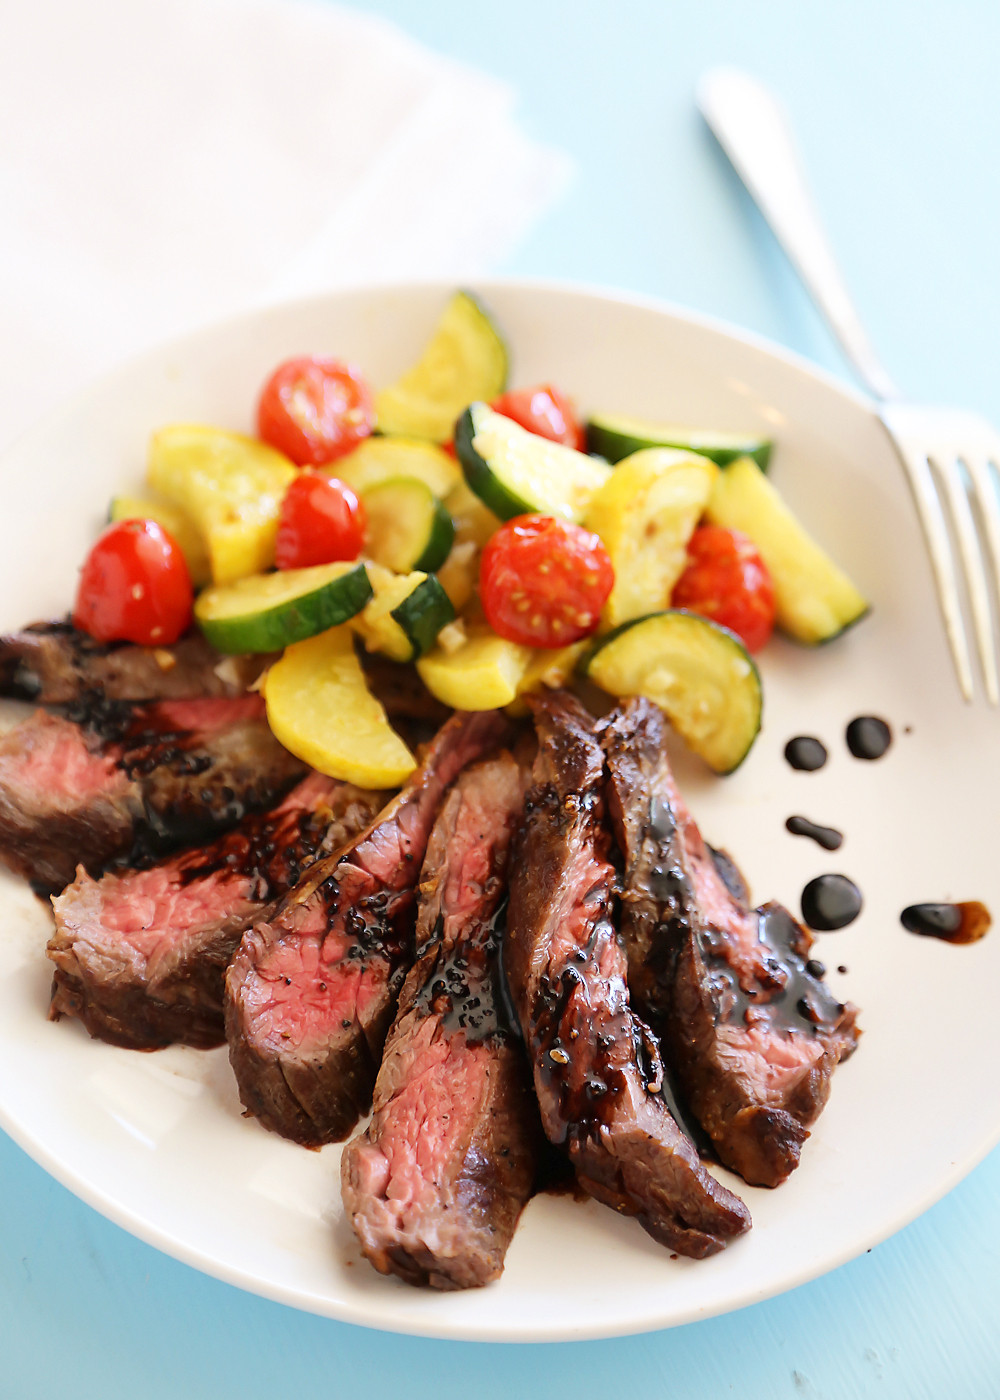 Healthy Side Dishes For Steak  Skillet Balsamic Skirt Steak with Garlic Zucchini Squash